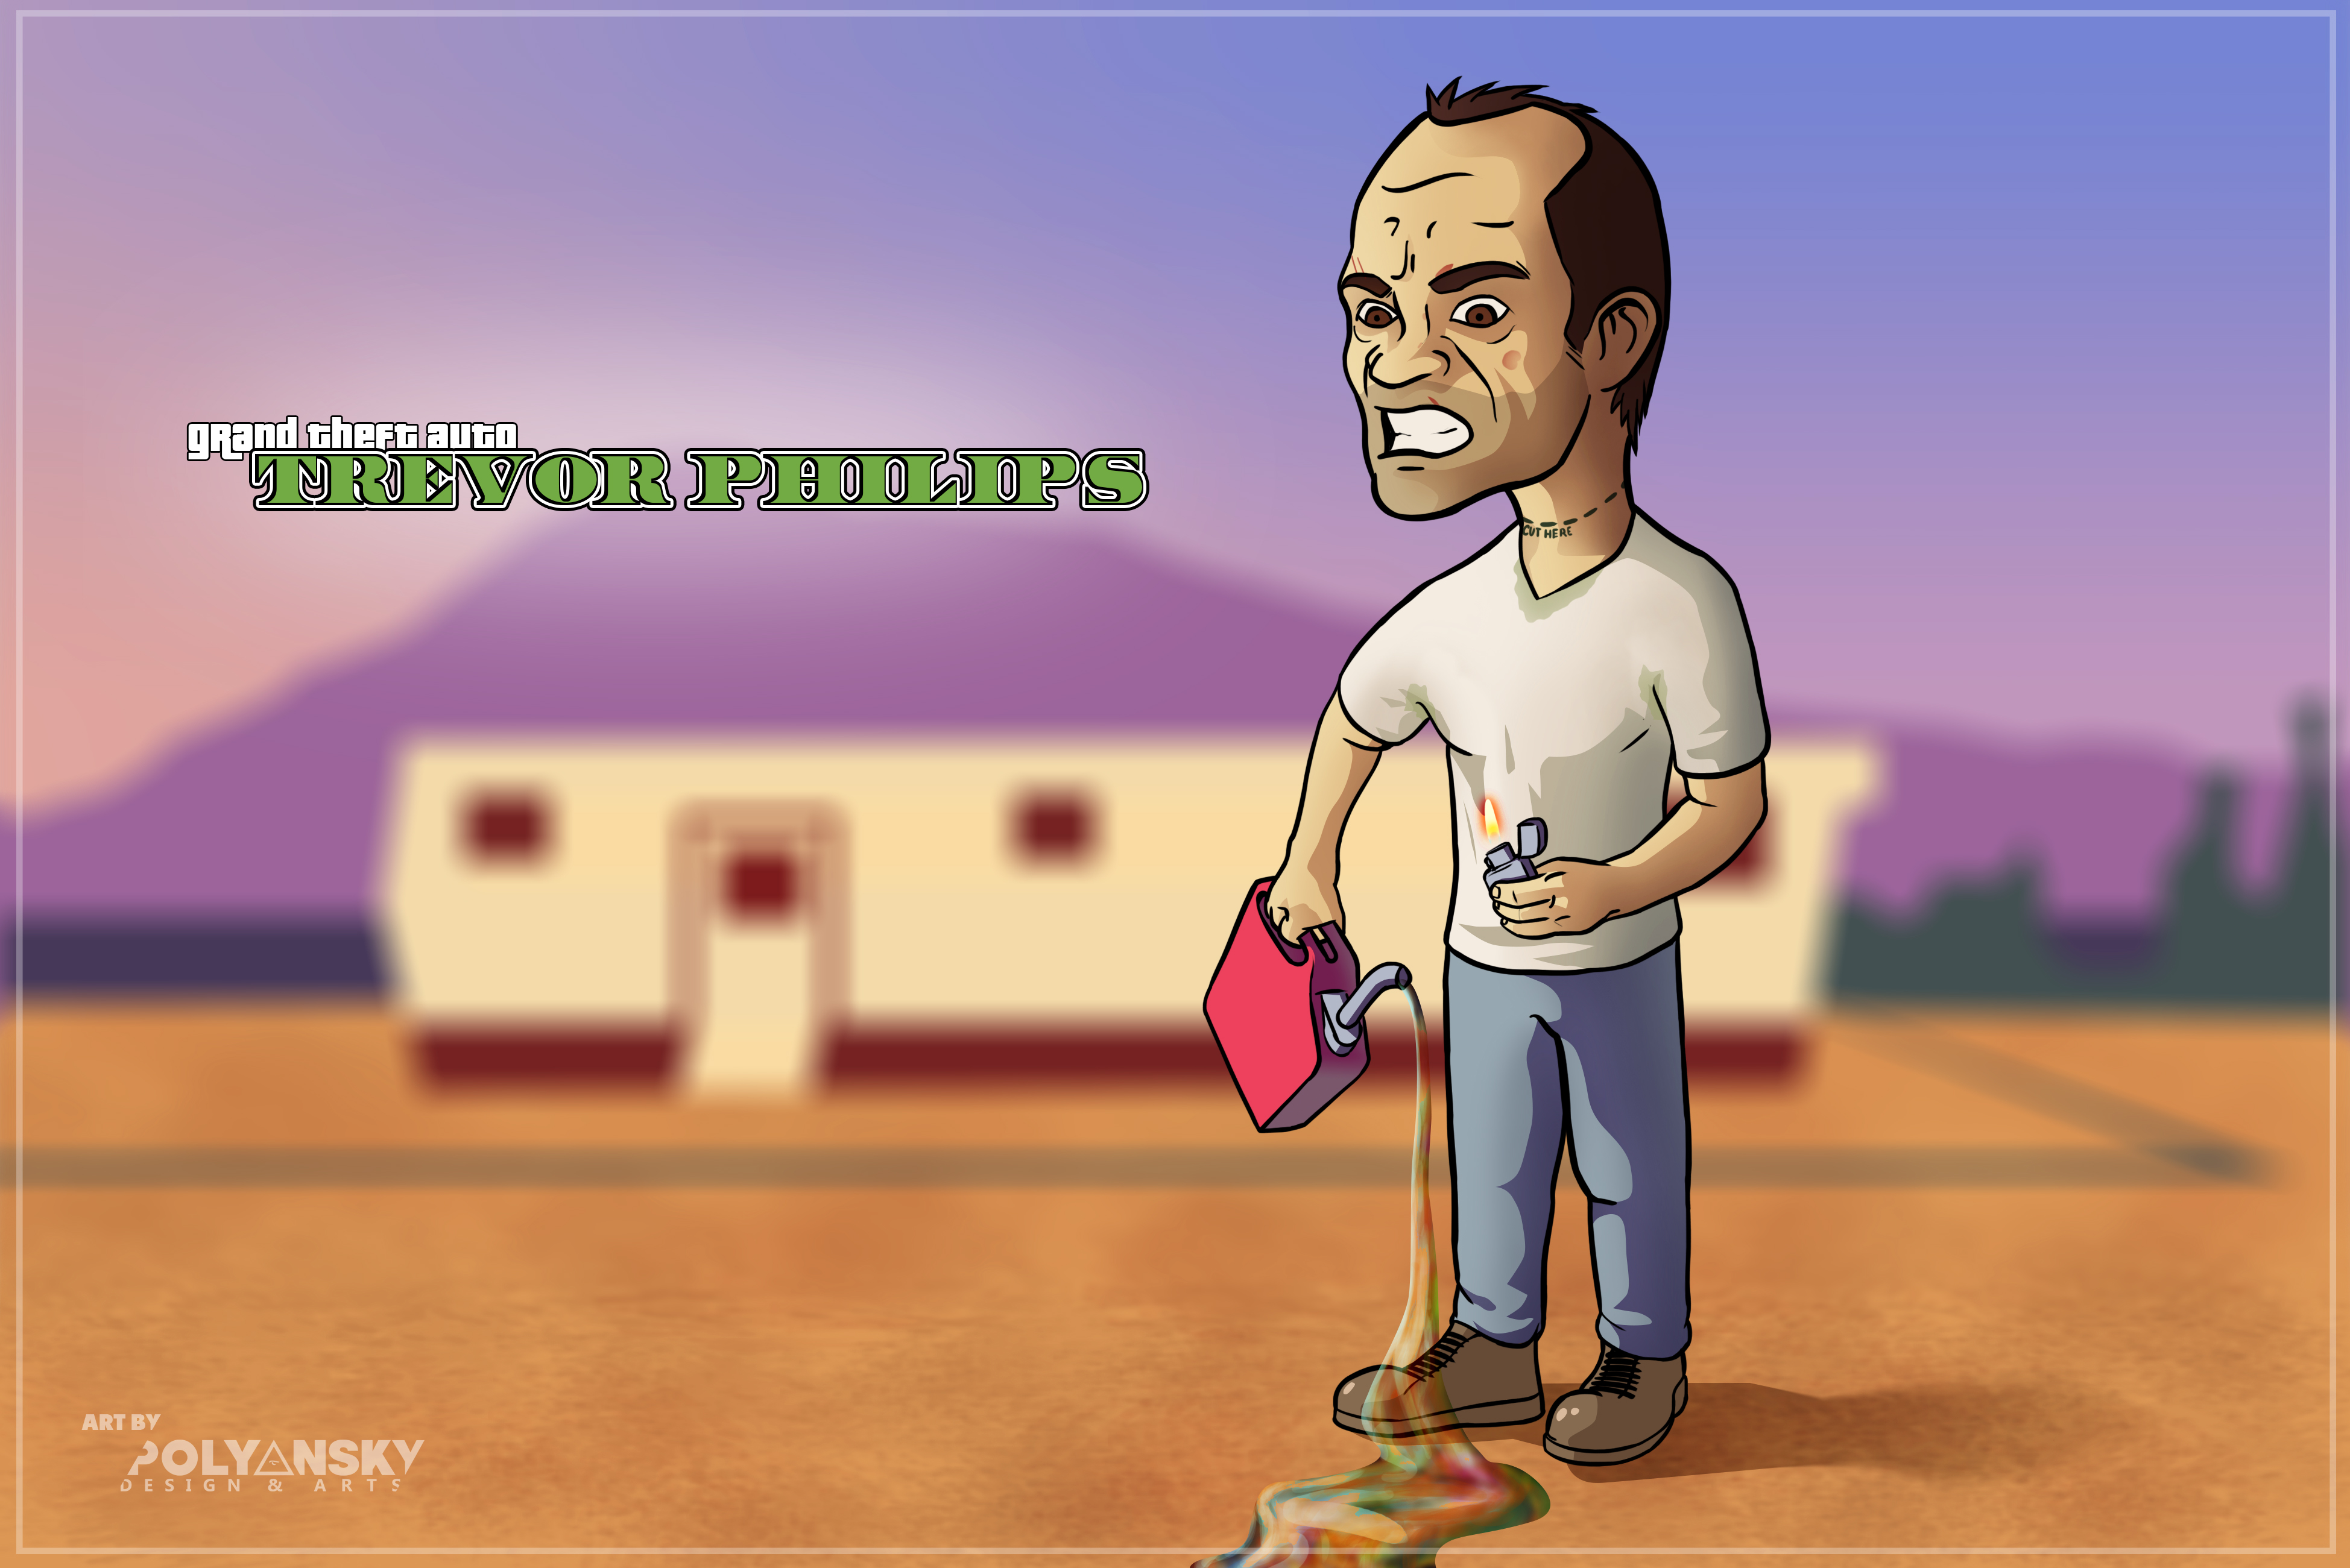 trevor_philips___caricature_art_by_polya